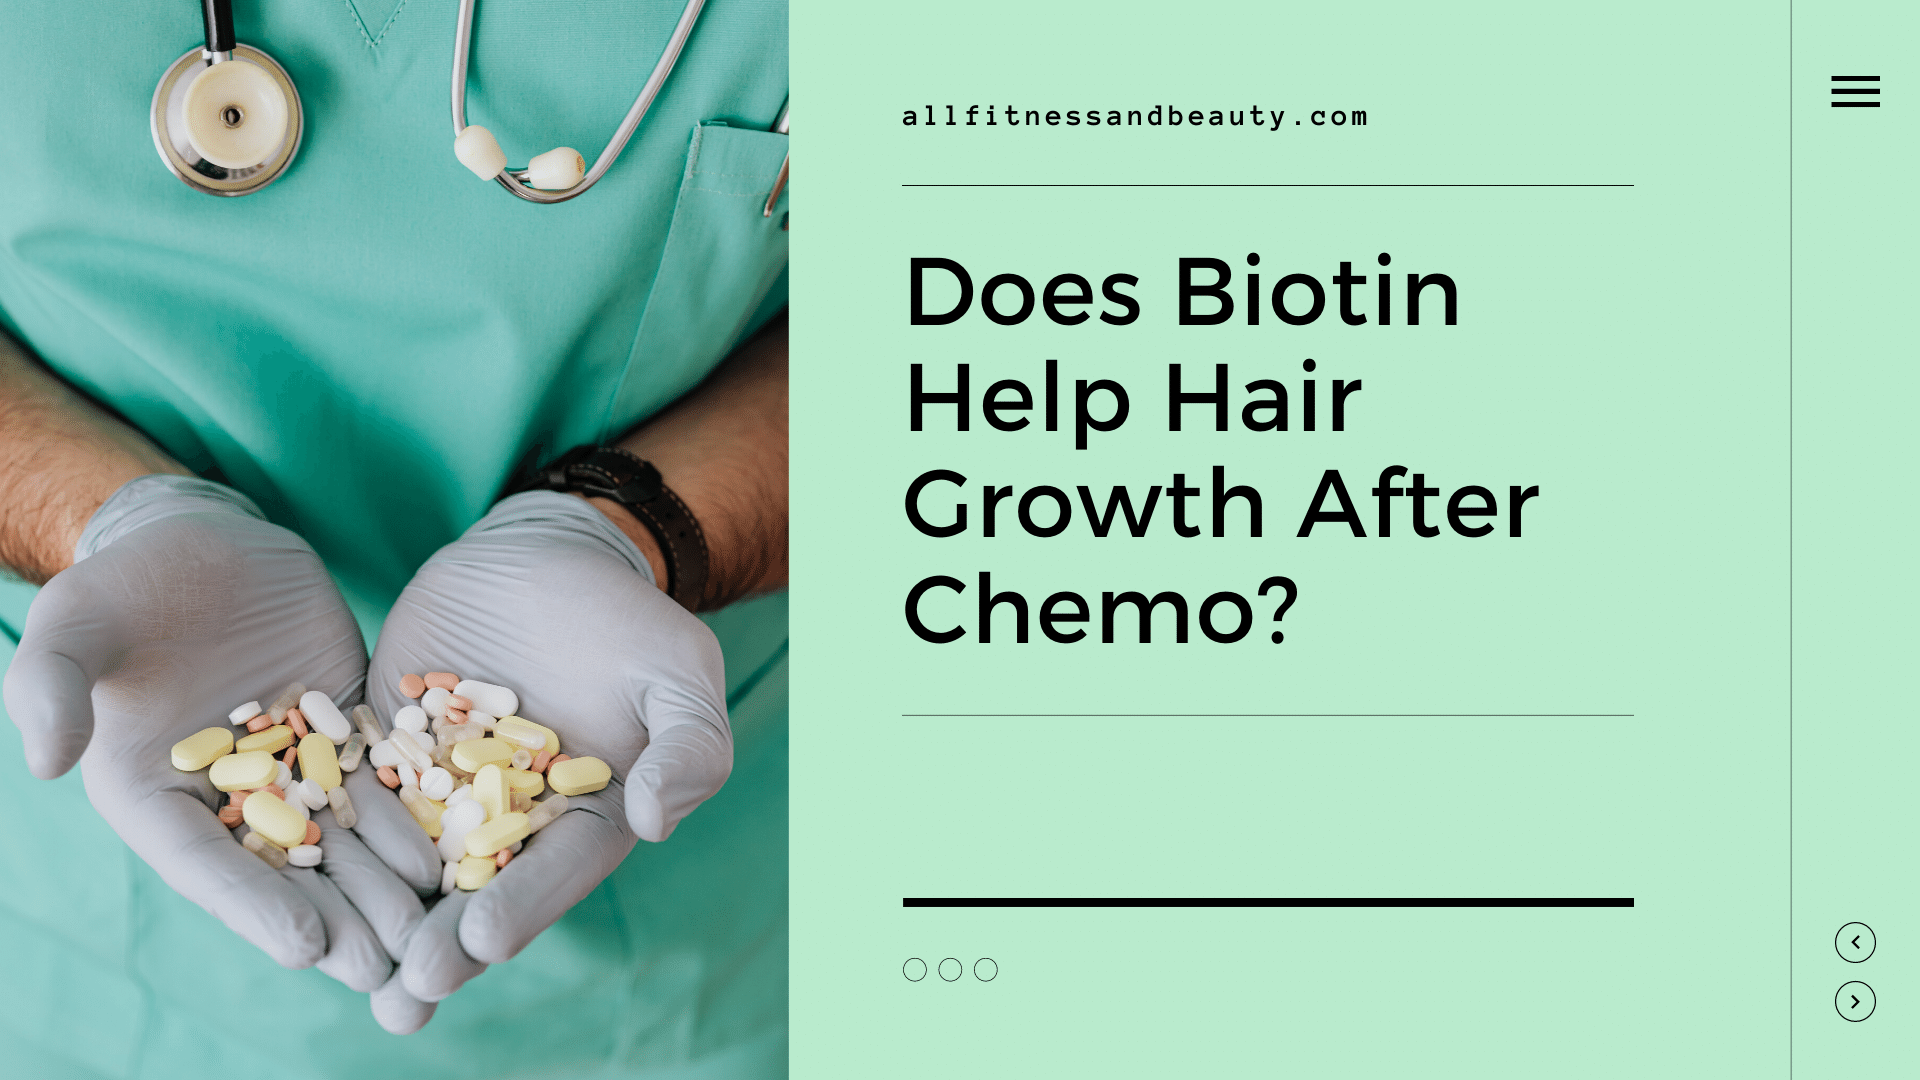 does biotin help hair growth after chemo